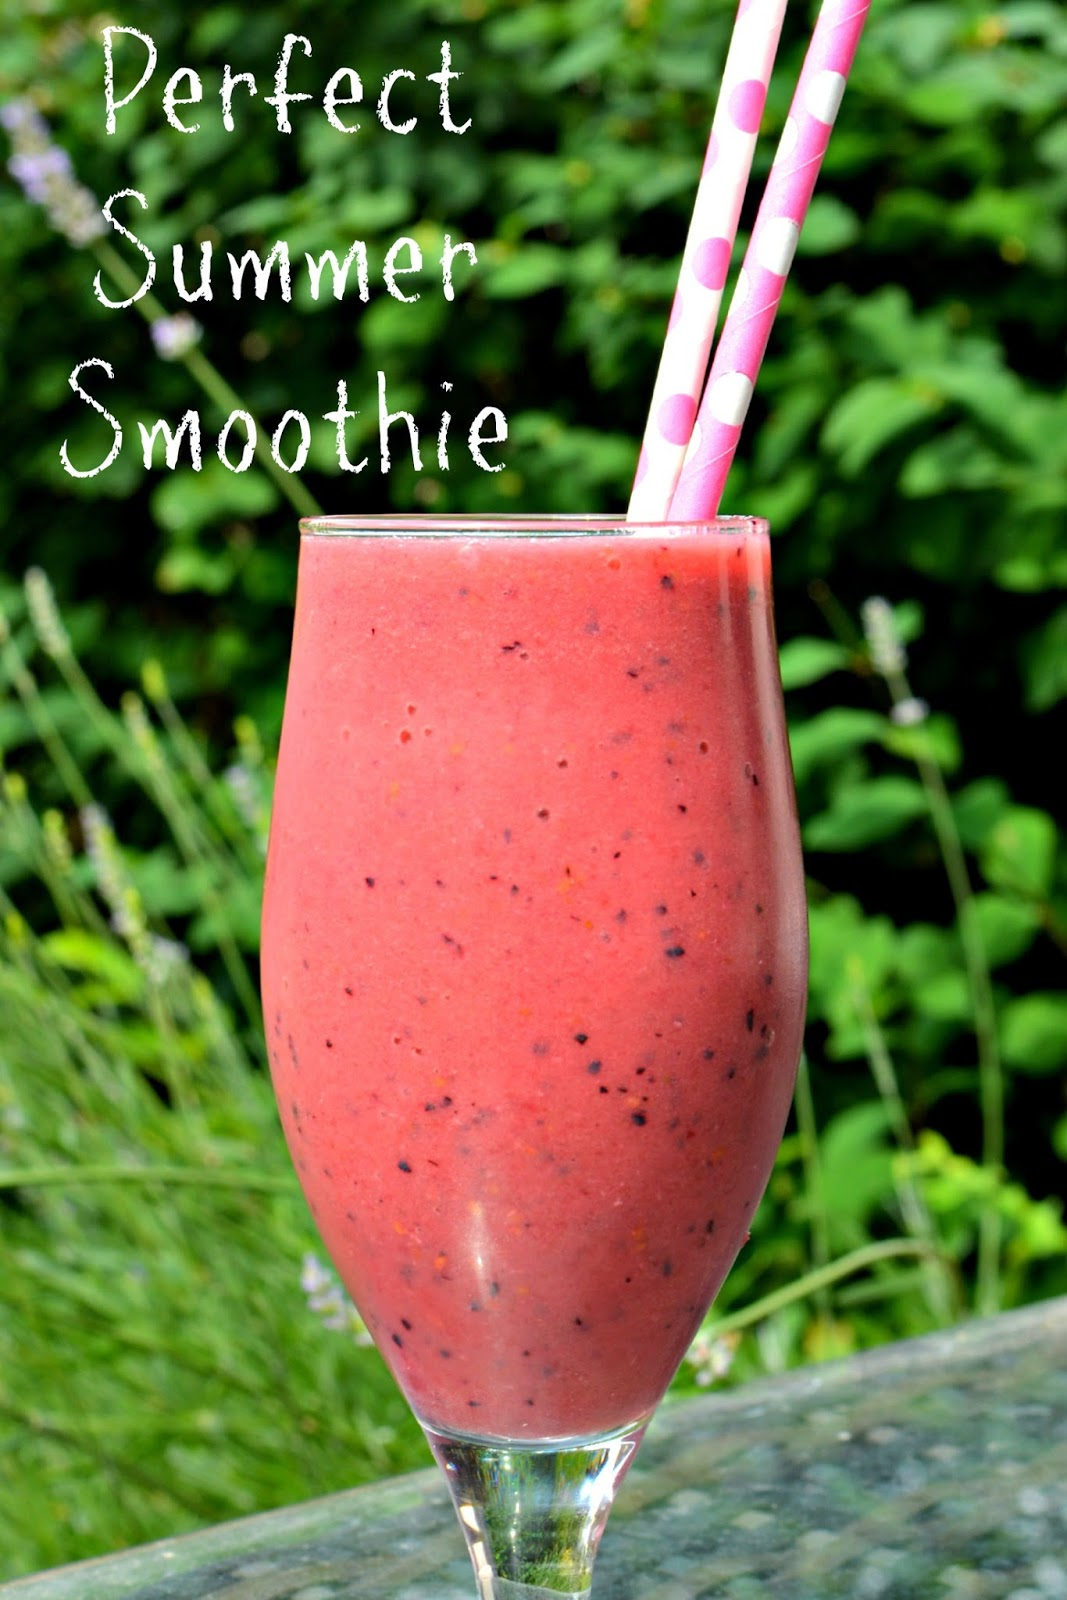 banana and berry summer smoothie recipe